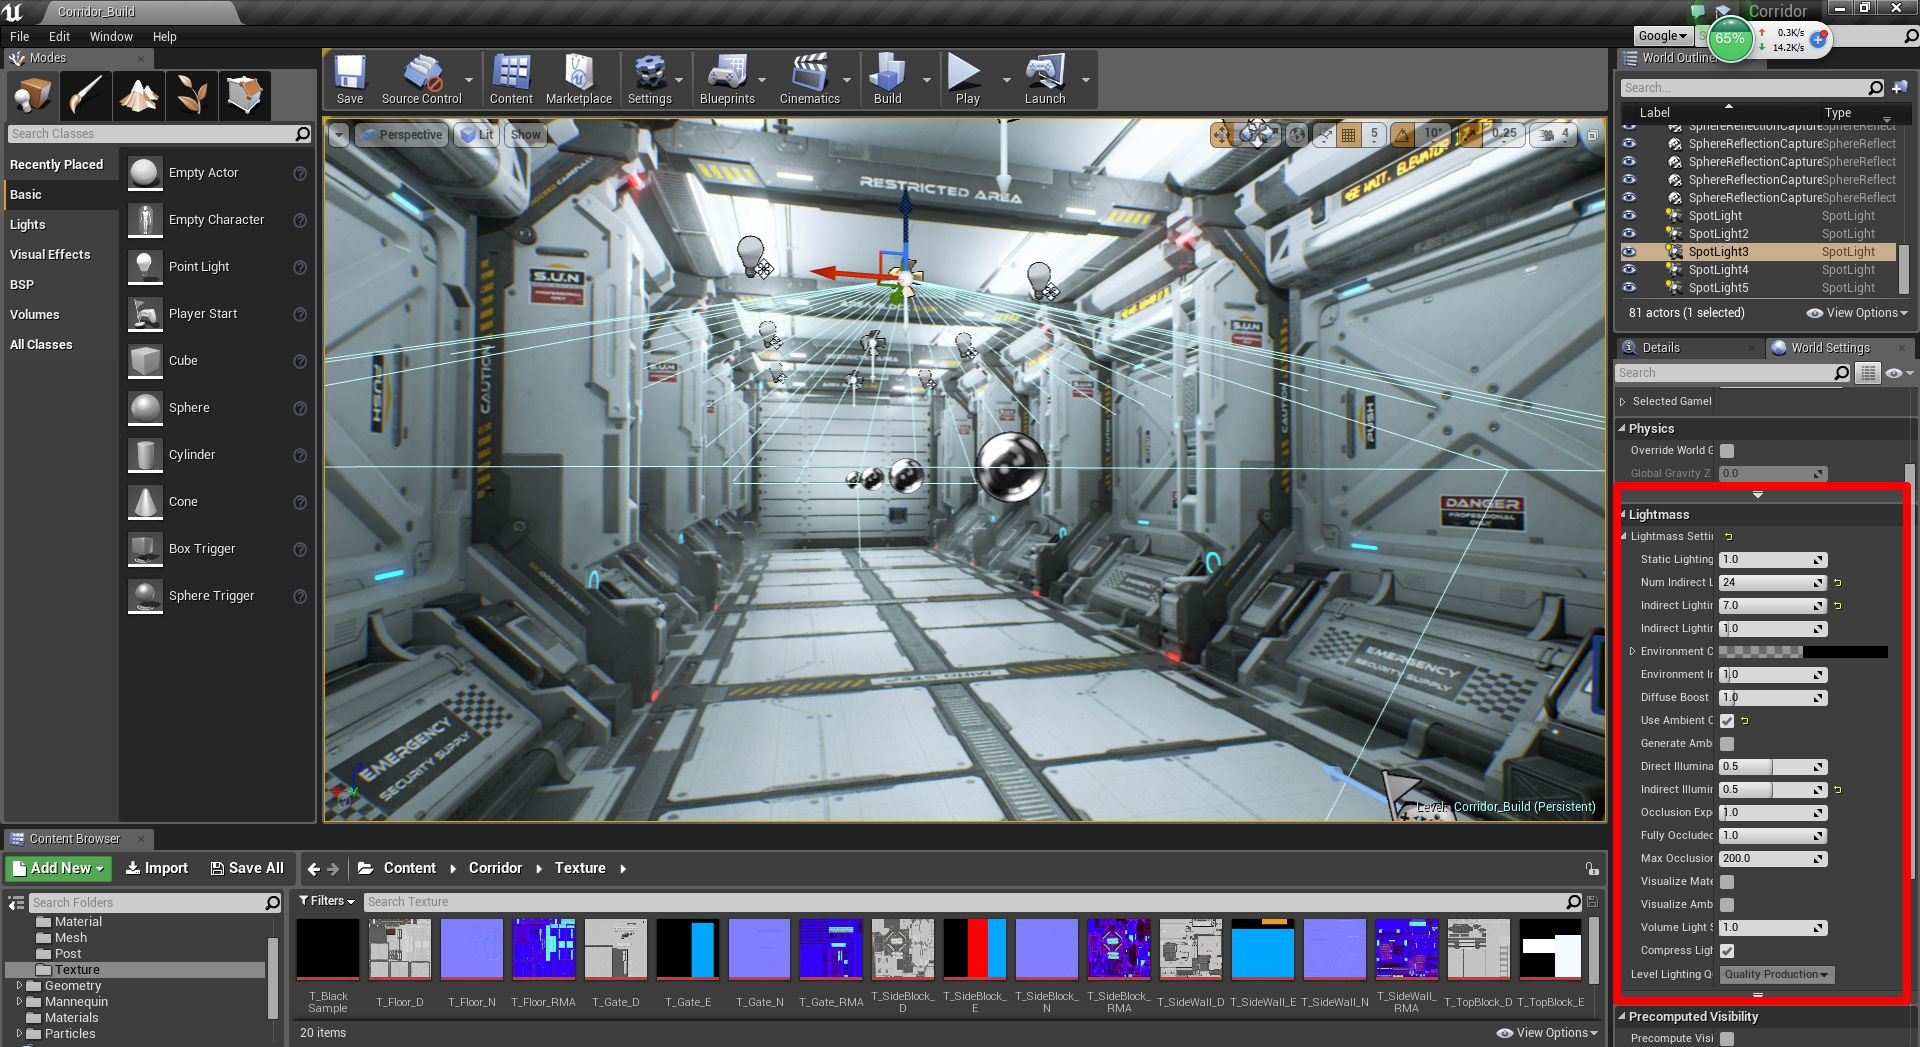 Building Materials And Meshes For Sci Fi Games Sci Fi Games Sci